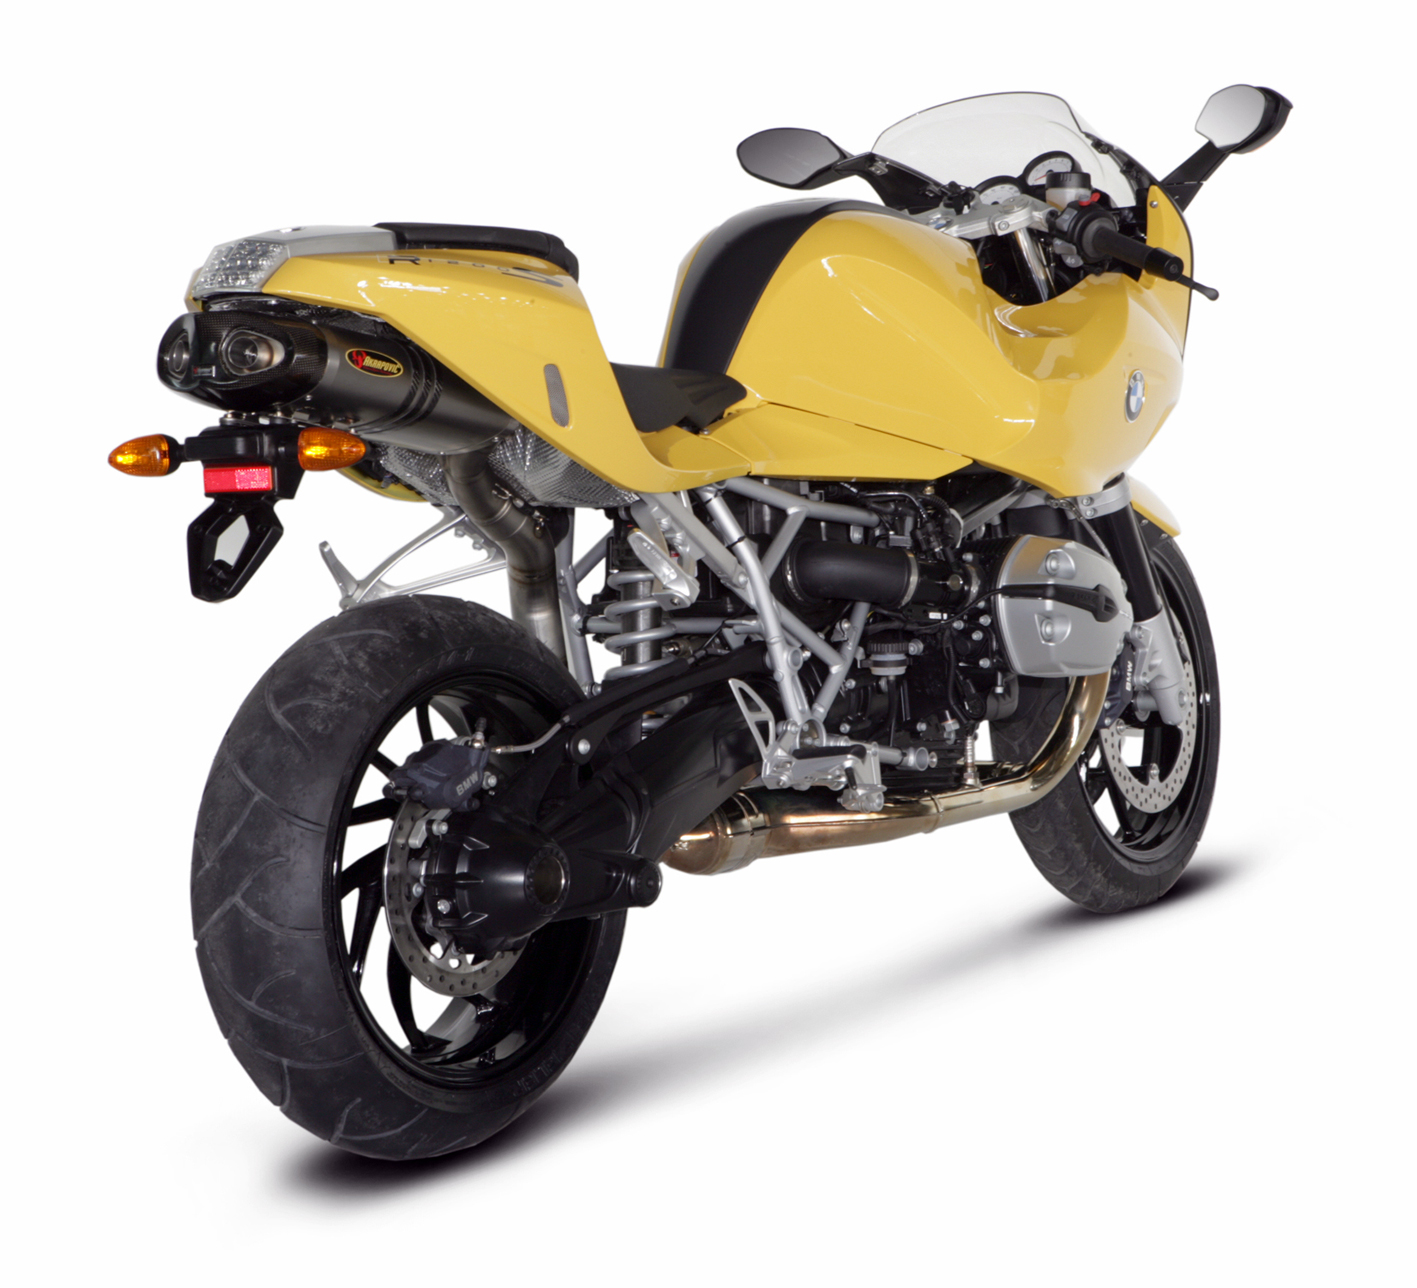 r sner und rose gbr bmw motorrad tuning akrapovic. Black Bedroom Furniture Sets. Home Design Ideas